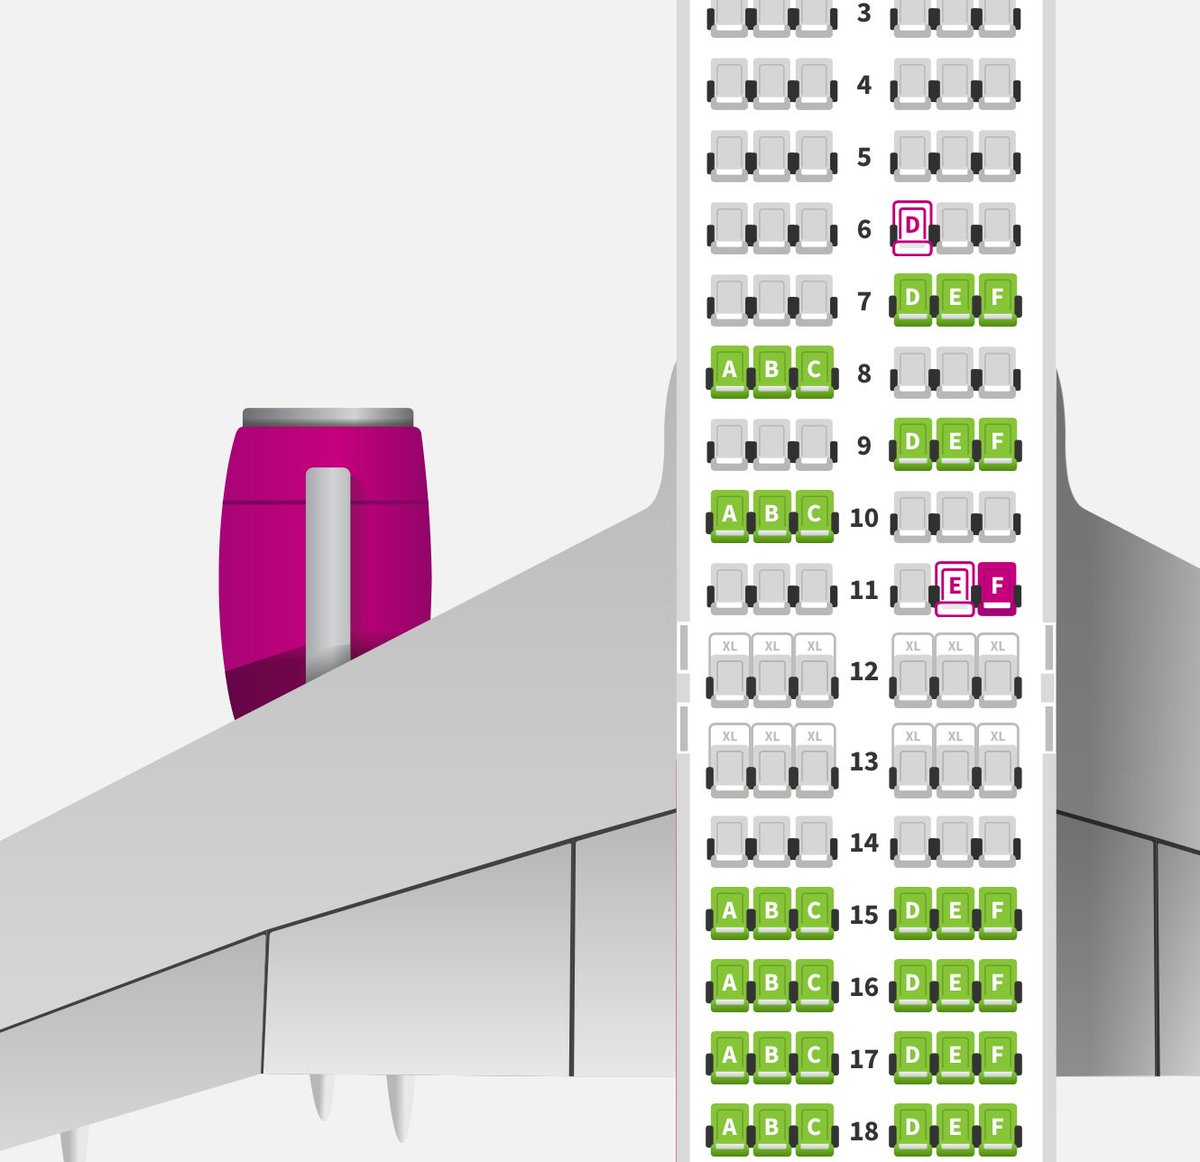 Bram Vanderborght On Twitter I Will Count On A Kind Customer To Switch Seats The Wizzair Seat Allocation Is Clearly Family Unfriendly Going Against Safety Advices And Again A Sad Example Of